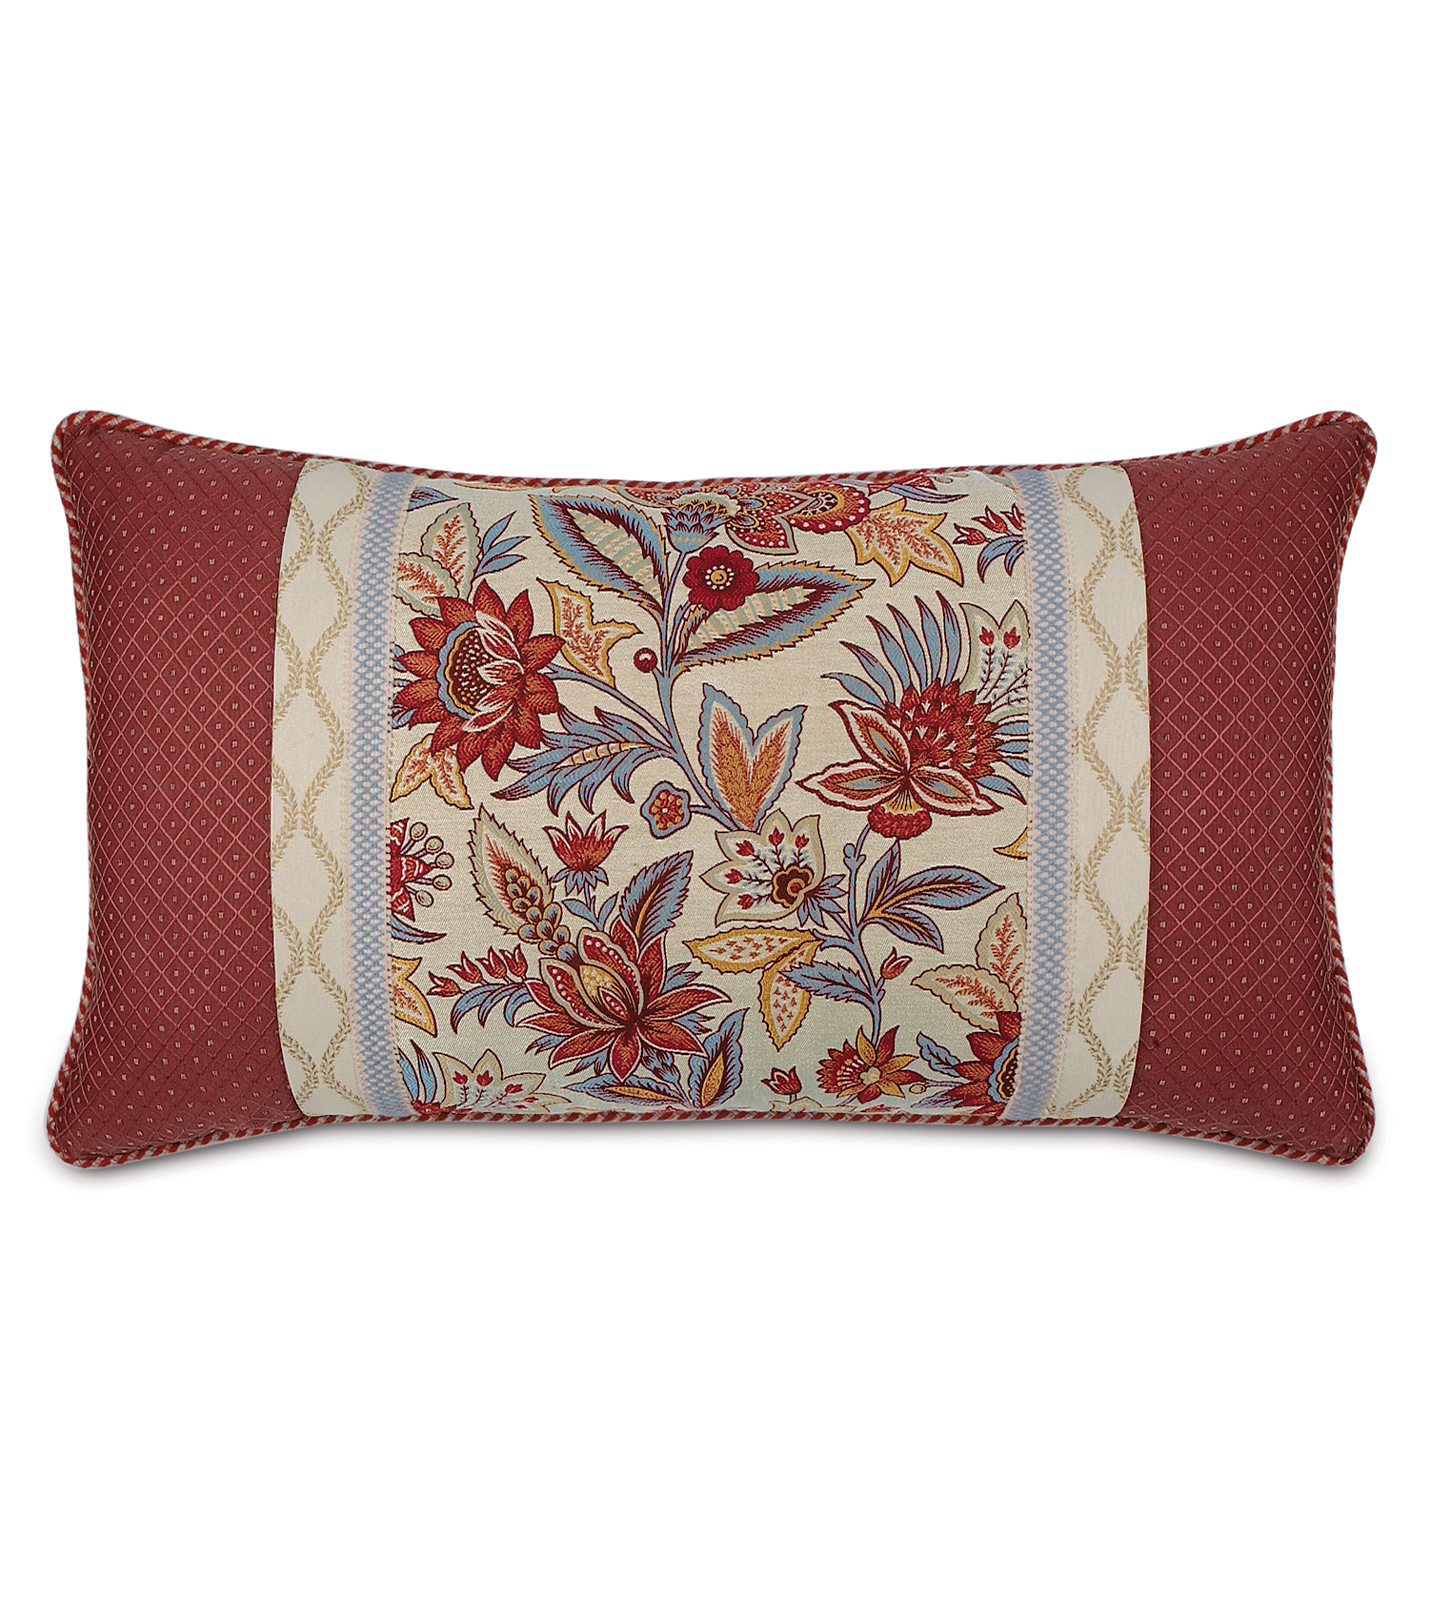 Decorative King Pillow Shams : Luxury Bedding by Eastern Accents - CORINNE INSERT KING SHAM